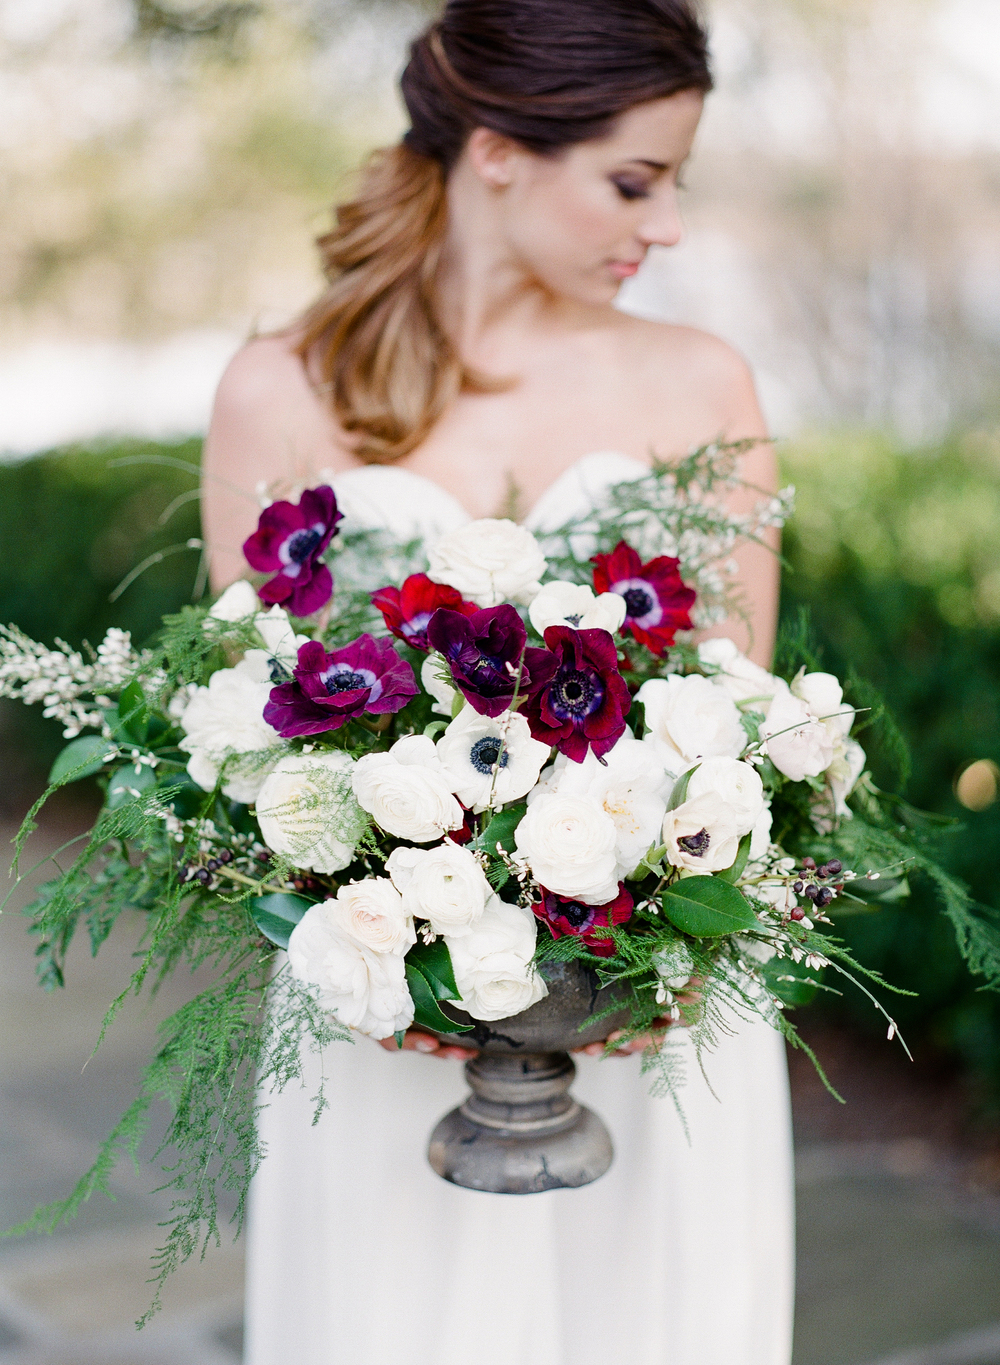 Victoria Austin Designs and Ashley Upchurch Photography | Cottage Hill Magazine